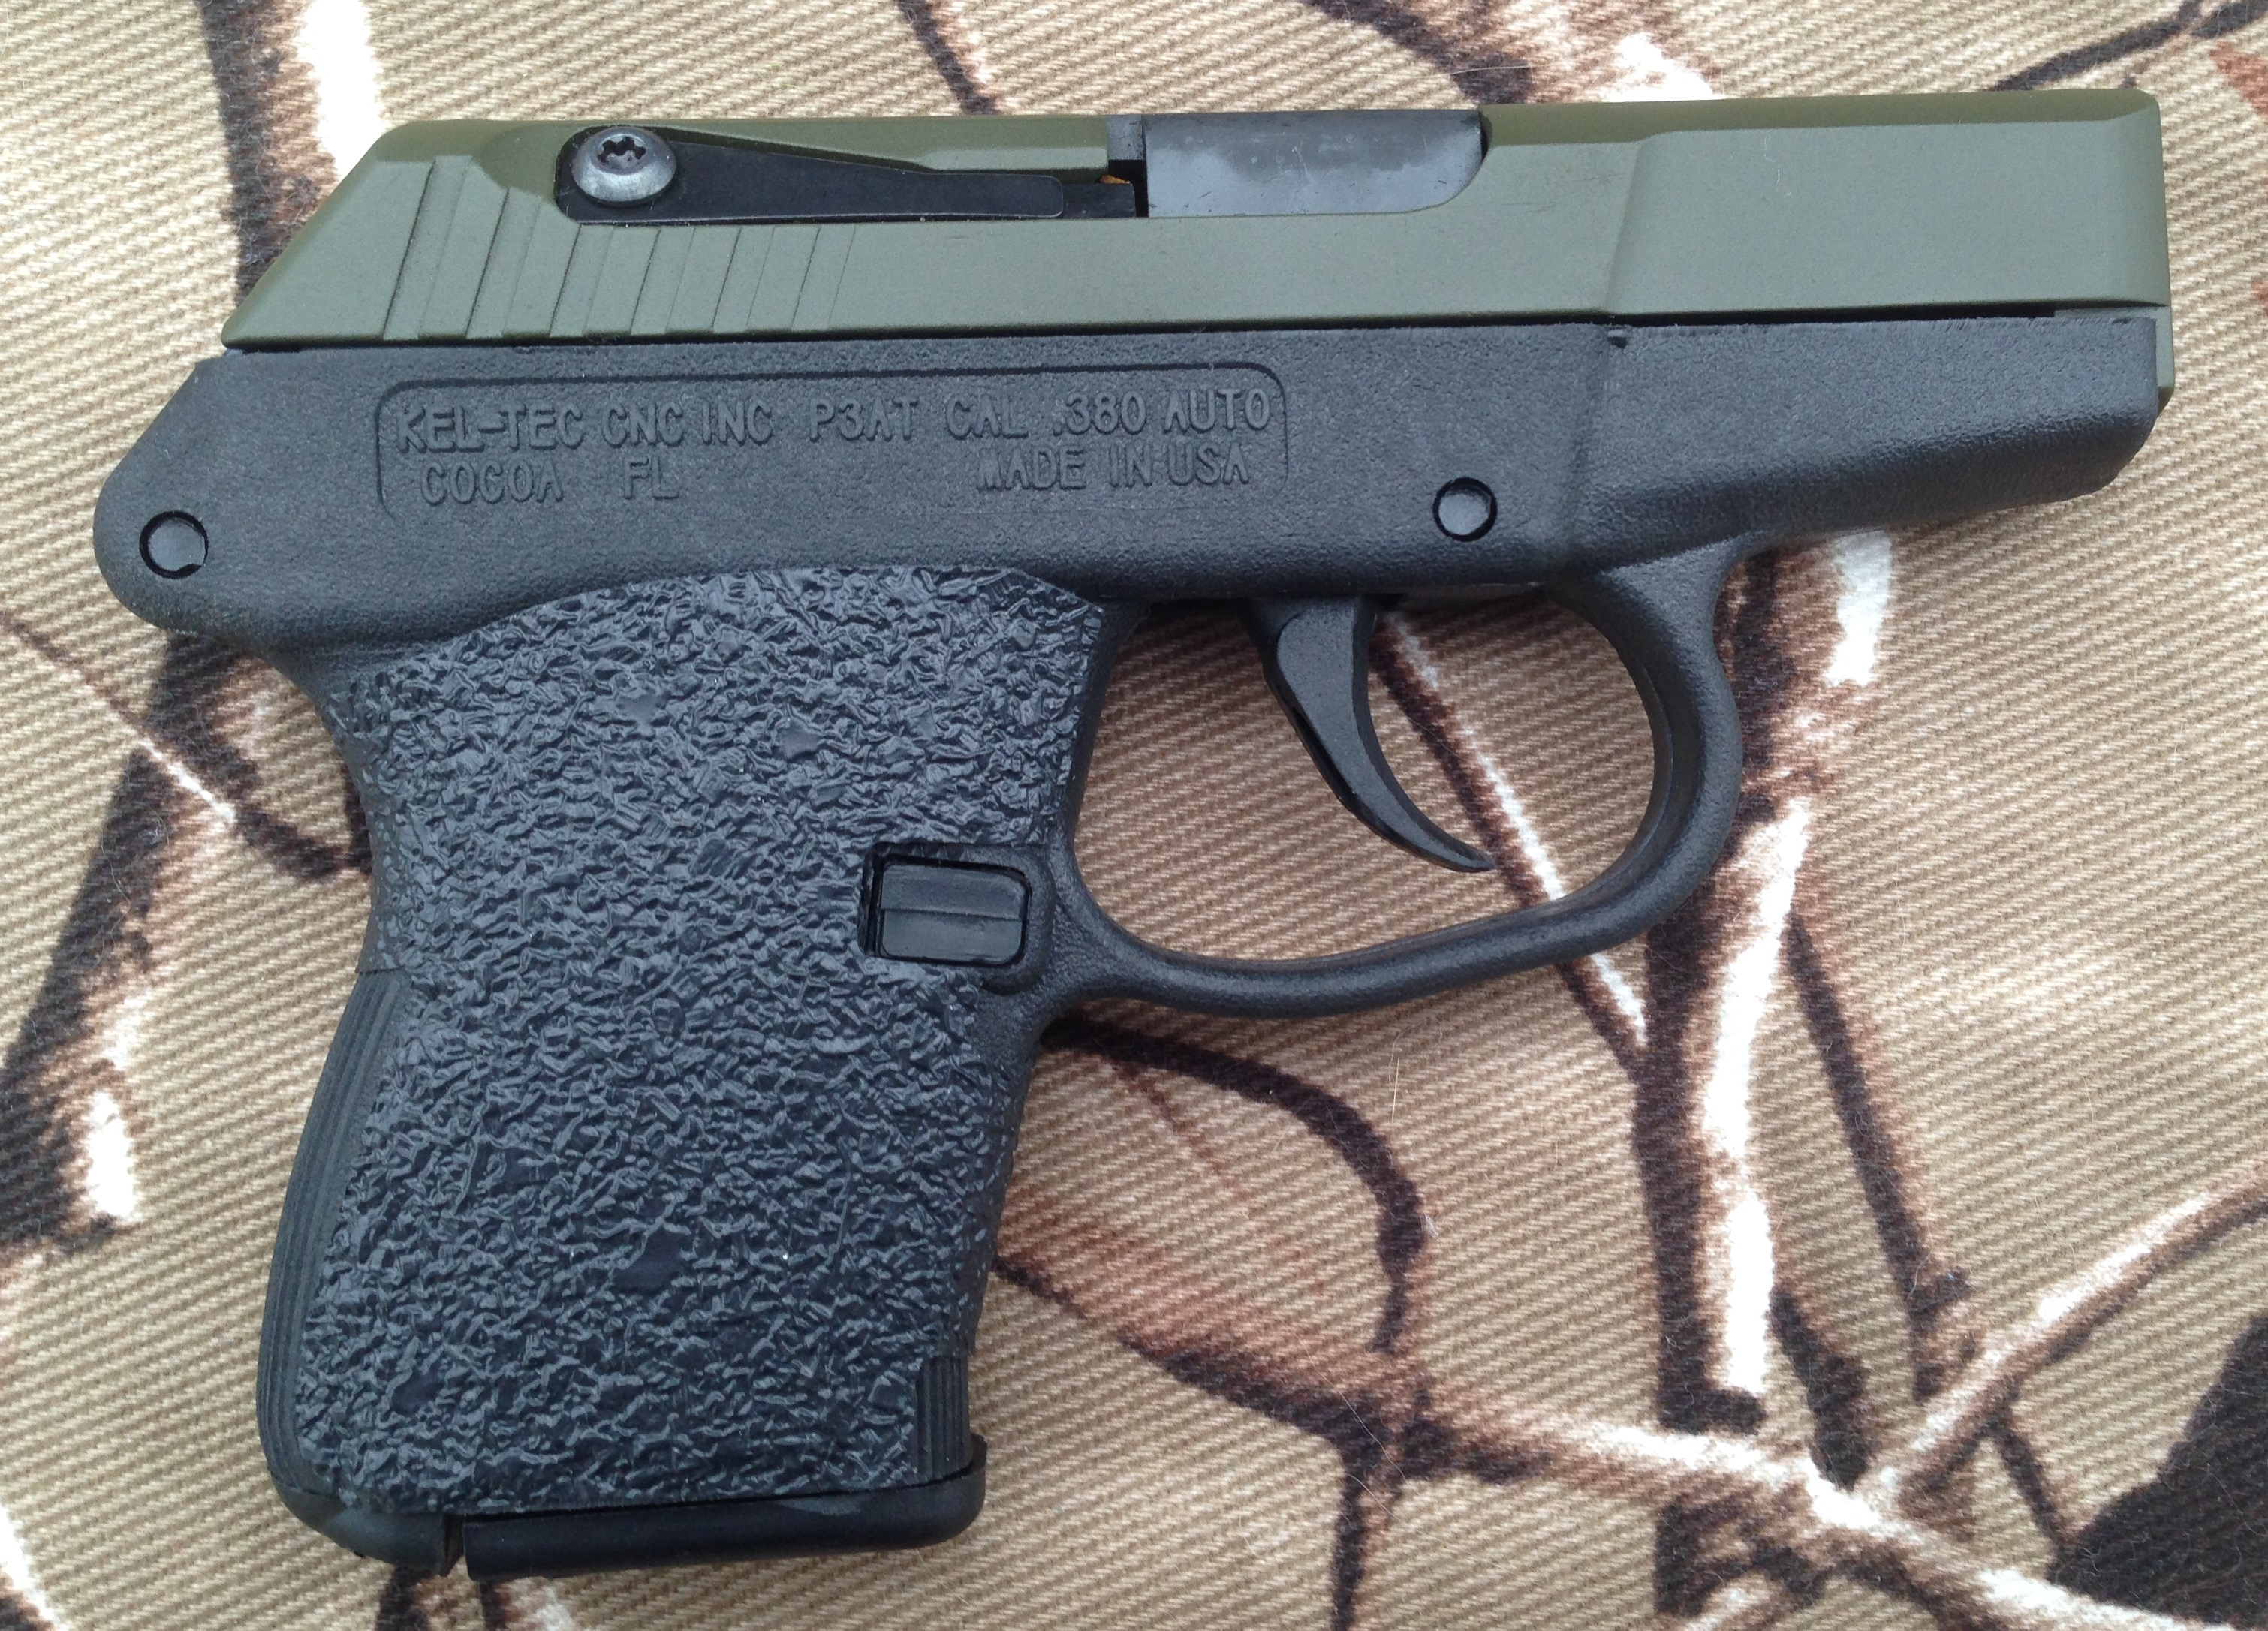 Tractiongrips: fit Kel-tec P3AT and P-32